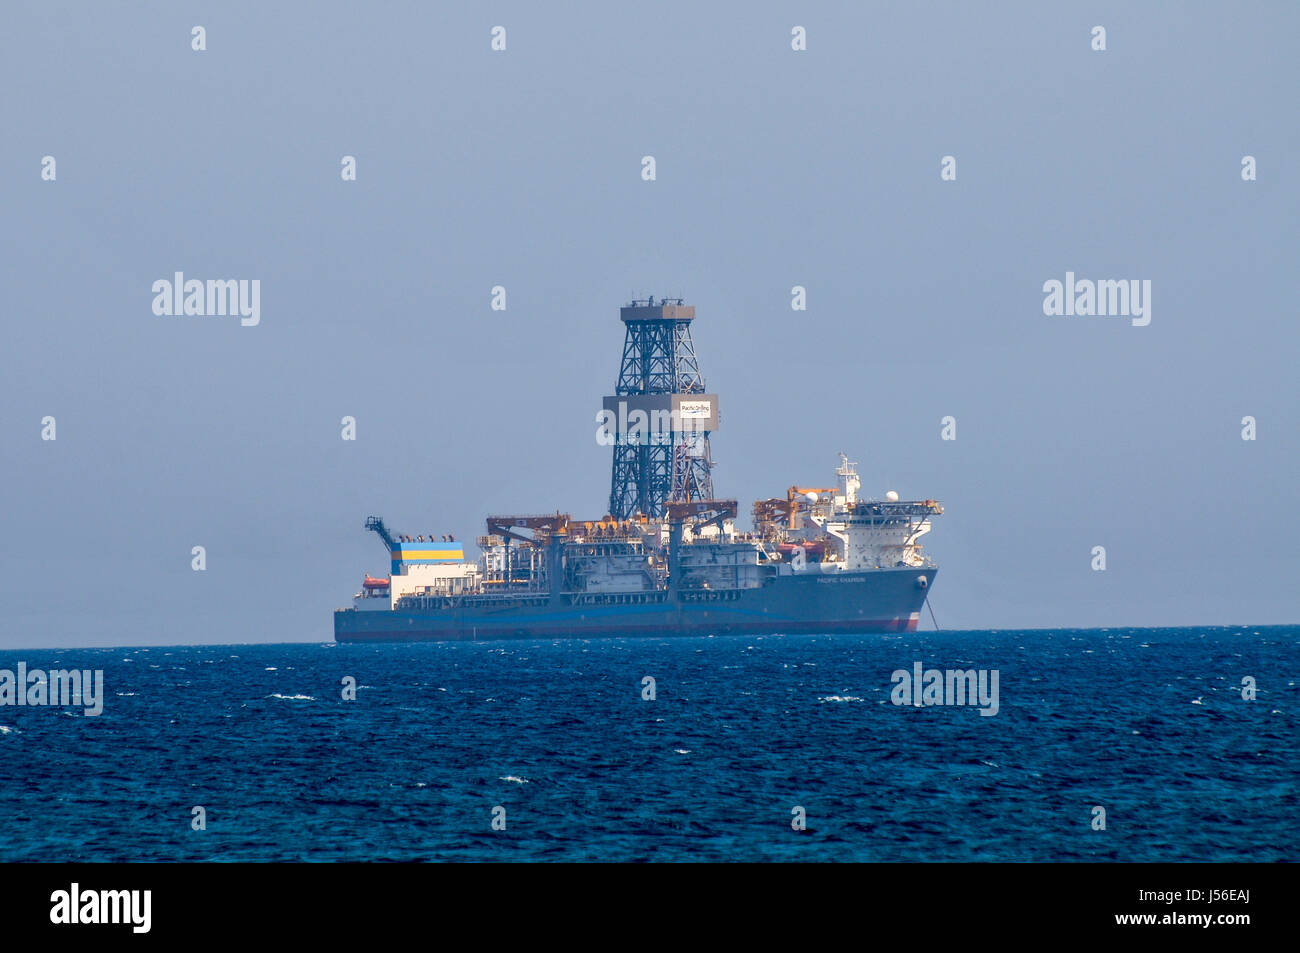 Deep sea Drilling rig of the coast of Limassol Cyprus - Stock Image